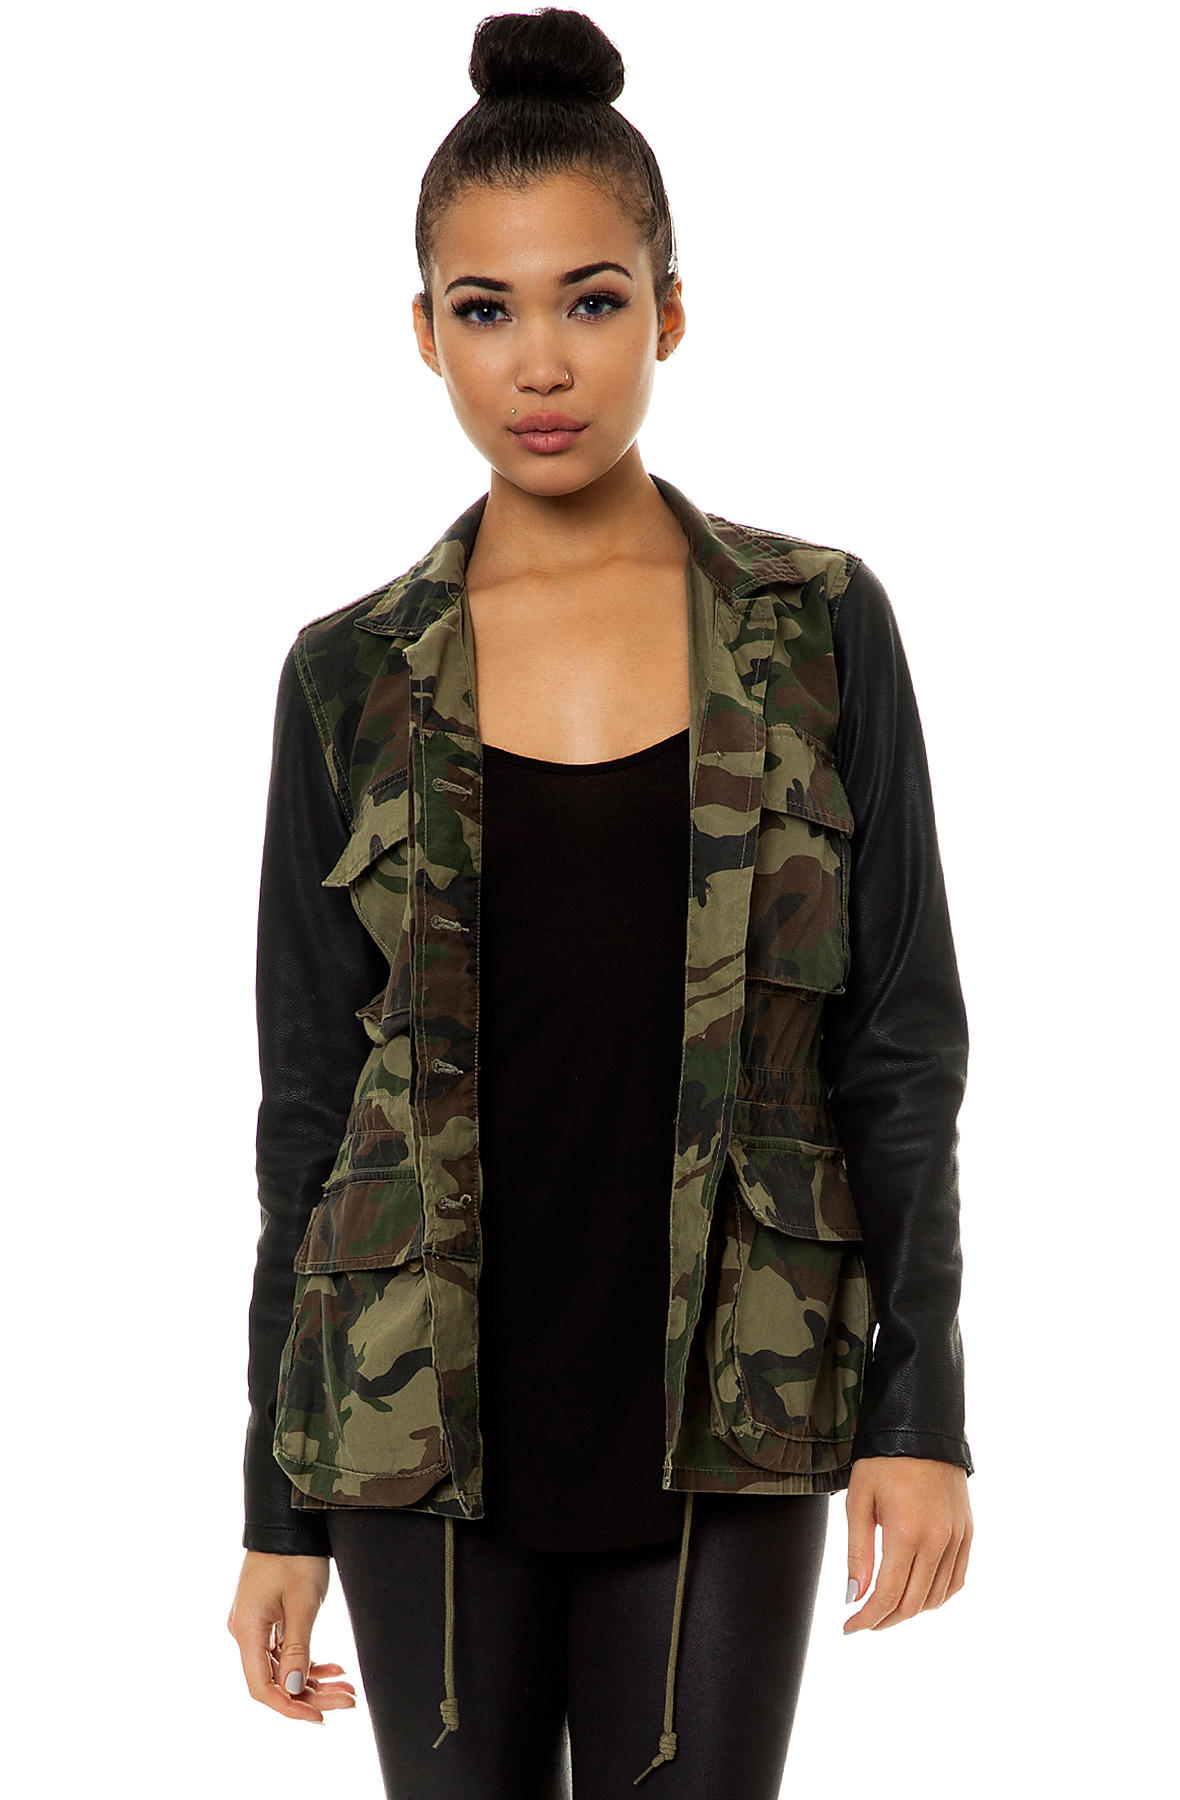 Obey Contrast Sleeve Jacket Hartman M65 in Field Camo